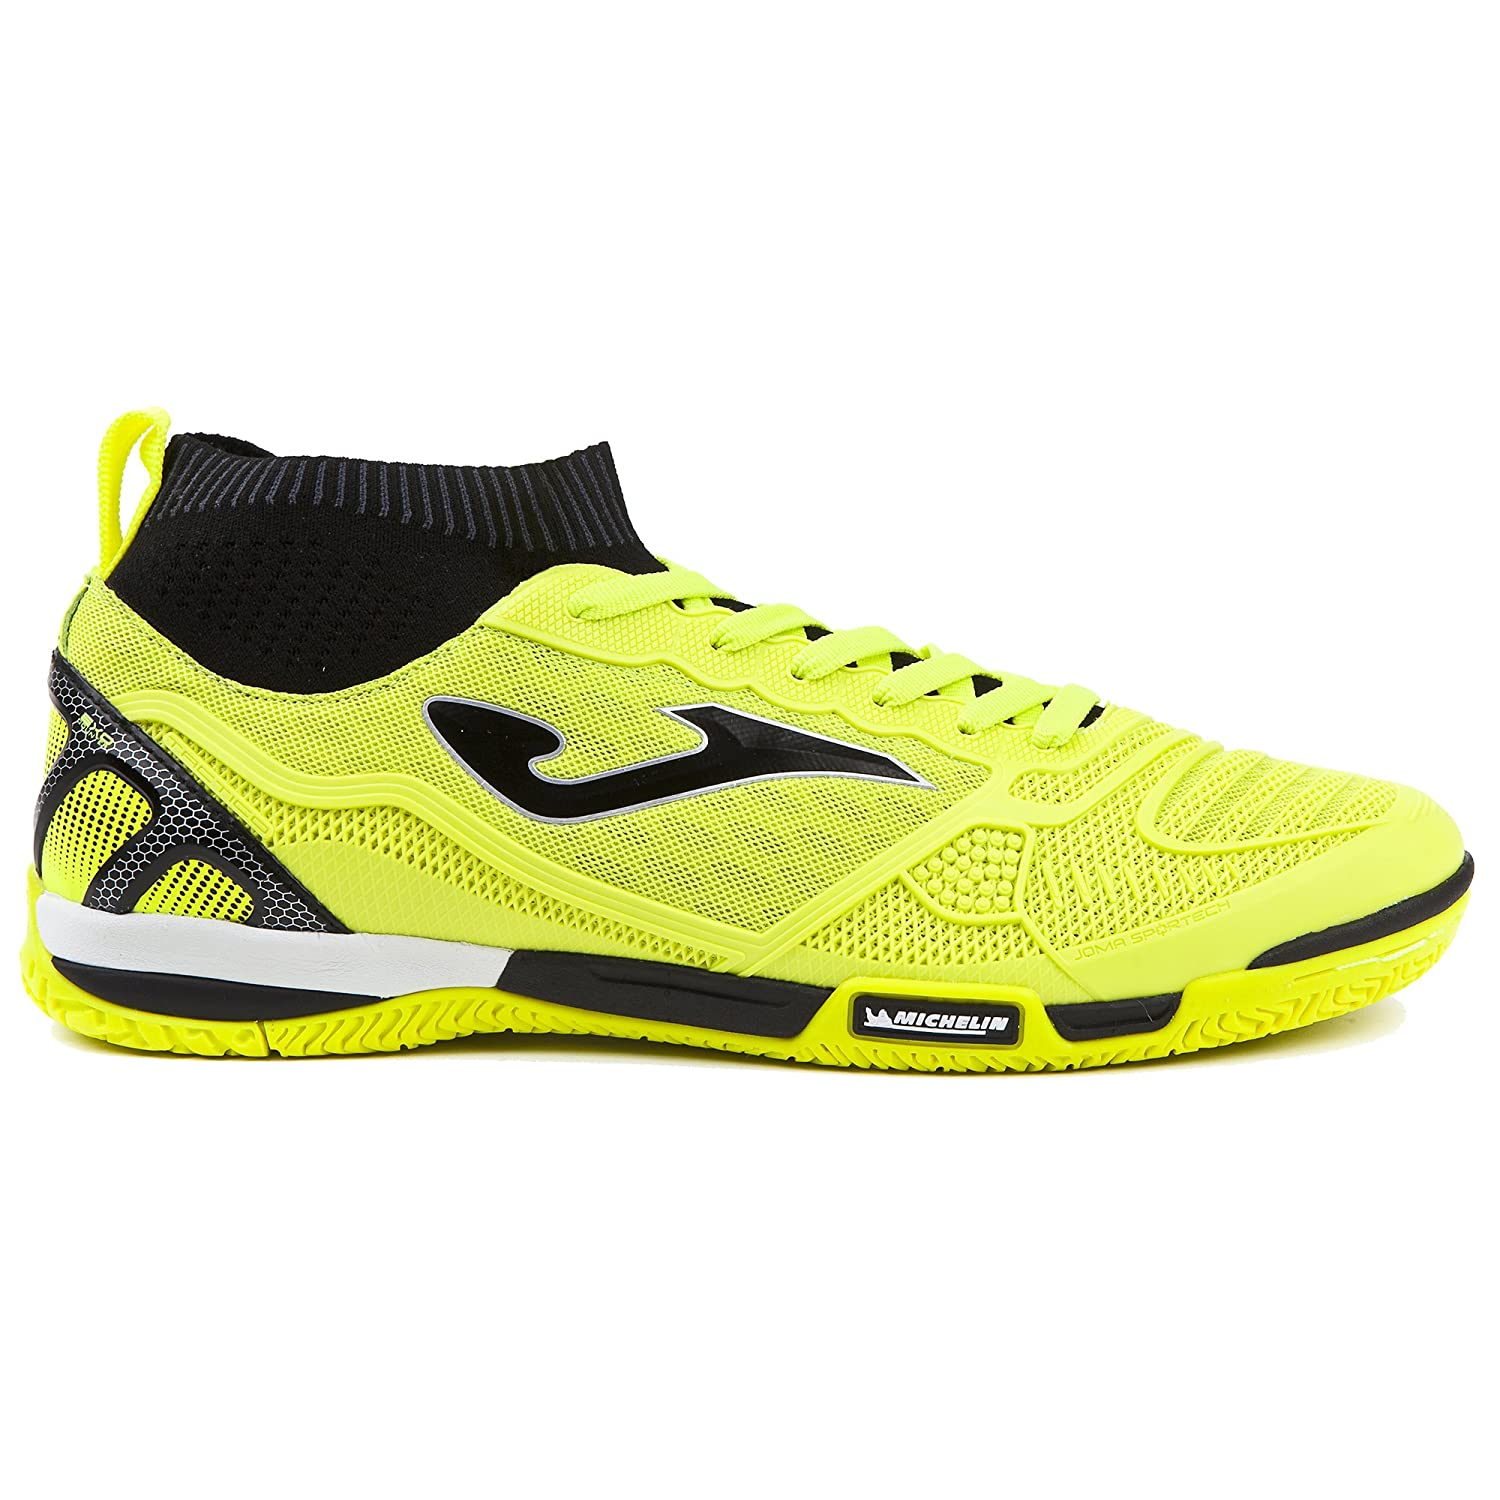 Joma Joma Chaussures Tactico 811 S in  vente pas cher